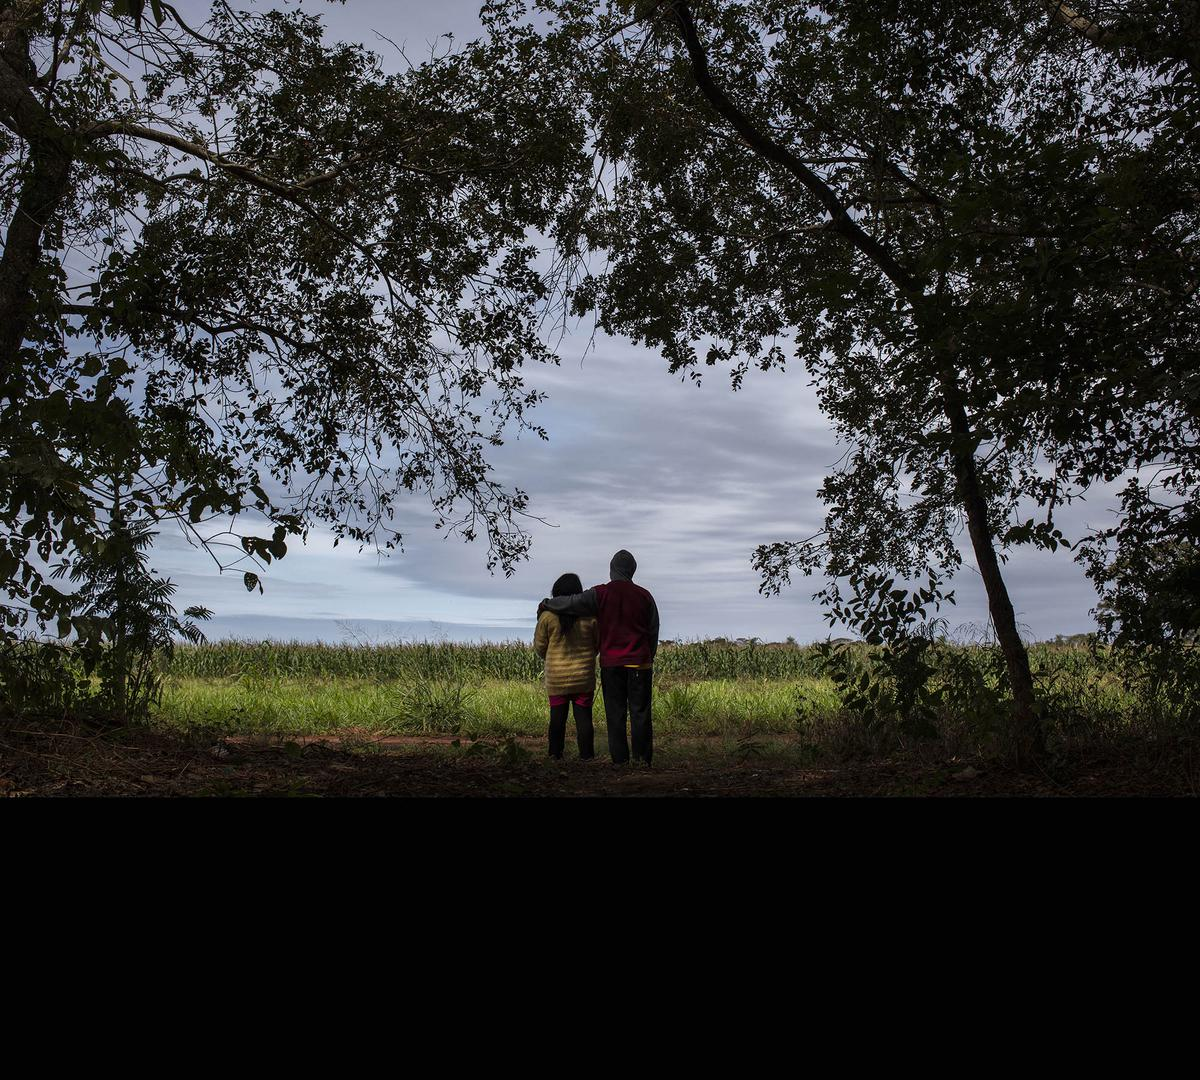 Irupe and Pinon, both in their 40s, live in a community a few hours' drive from Campo Grande, the capital city of Mato Grosso do Sul in mid-west Brazil.